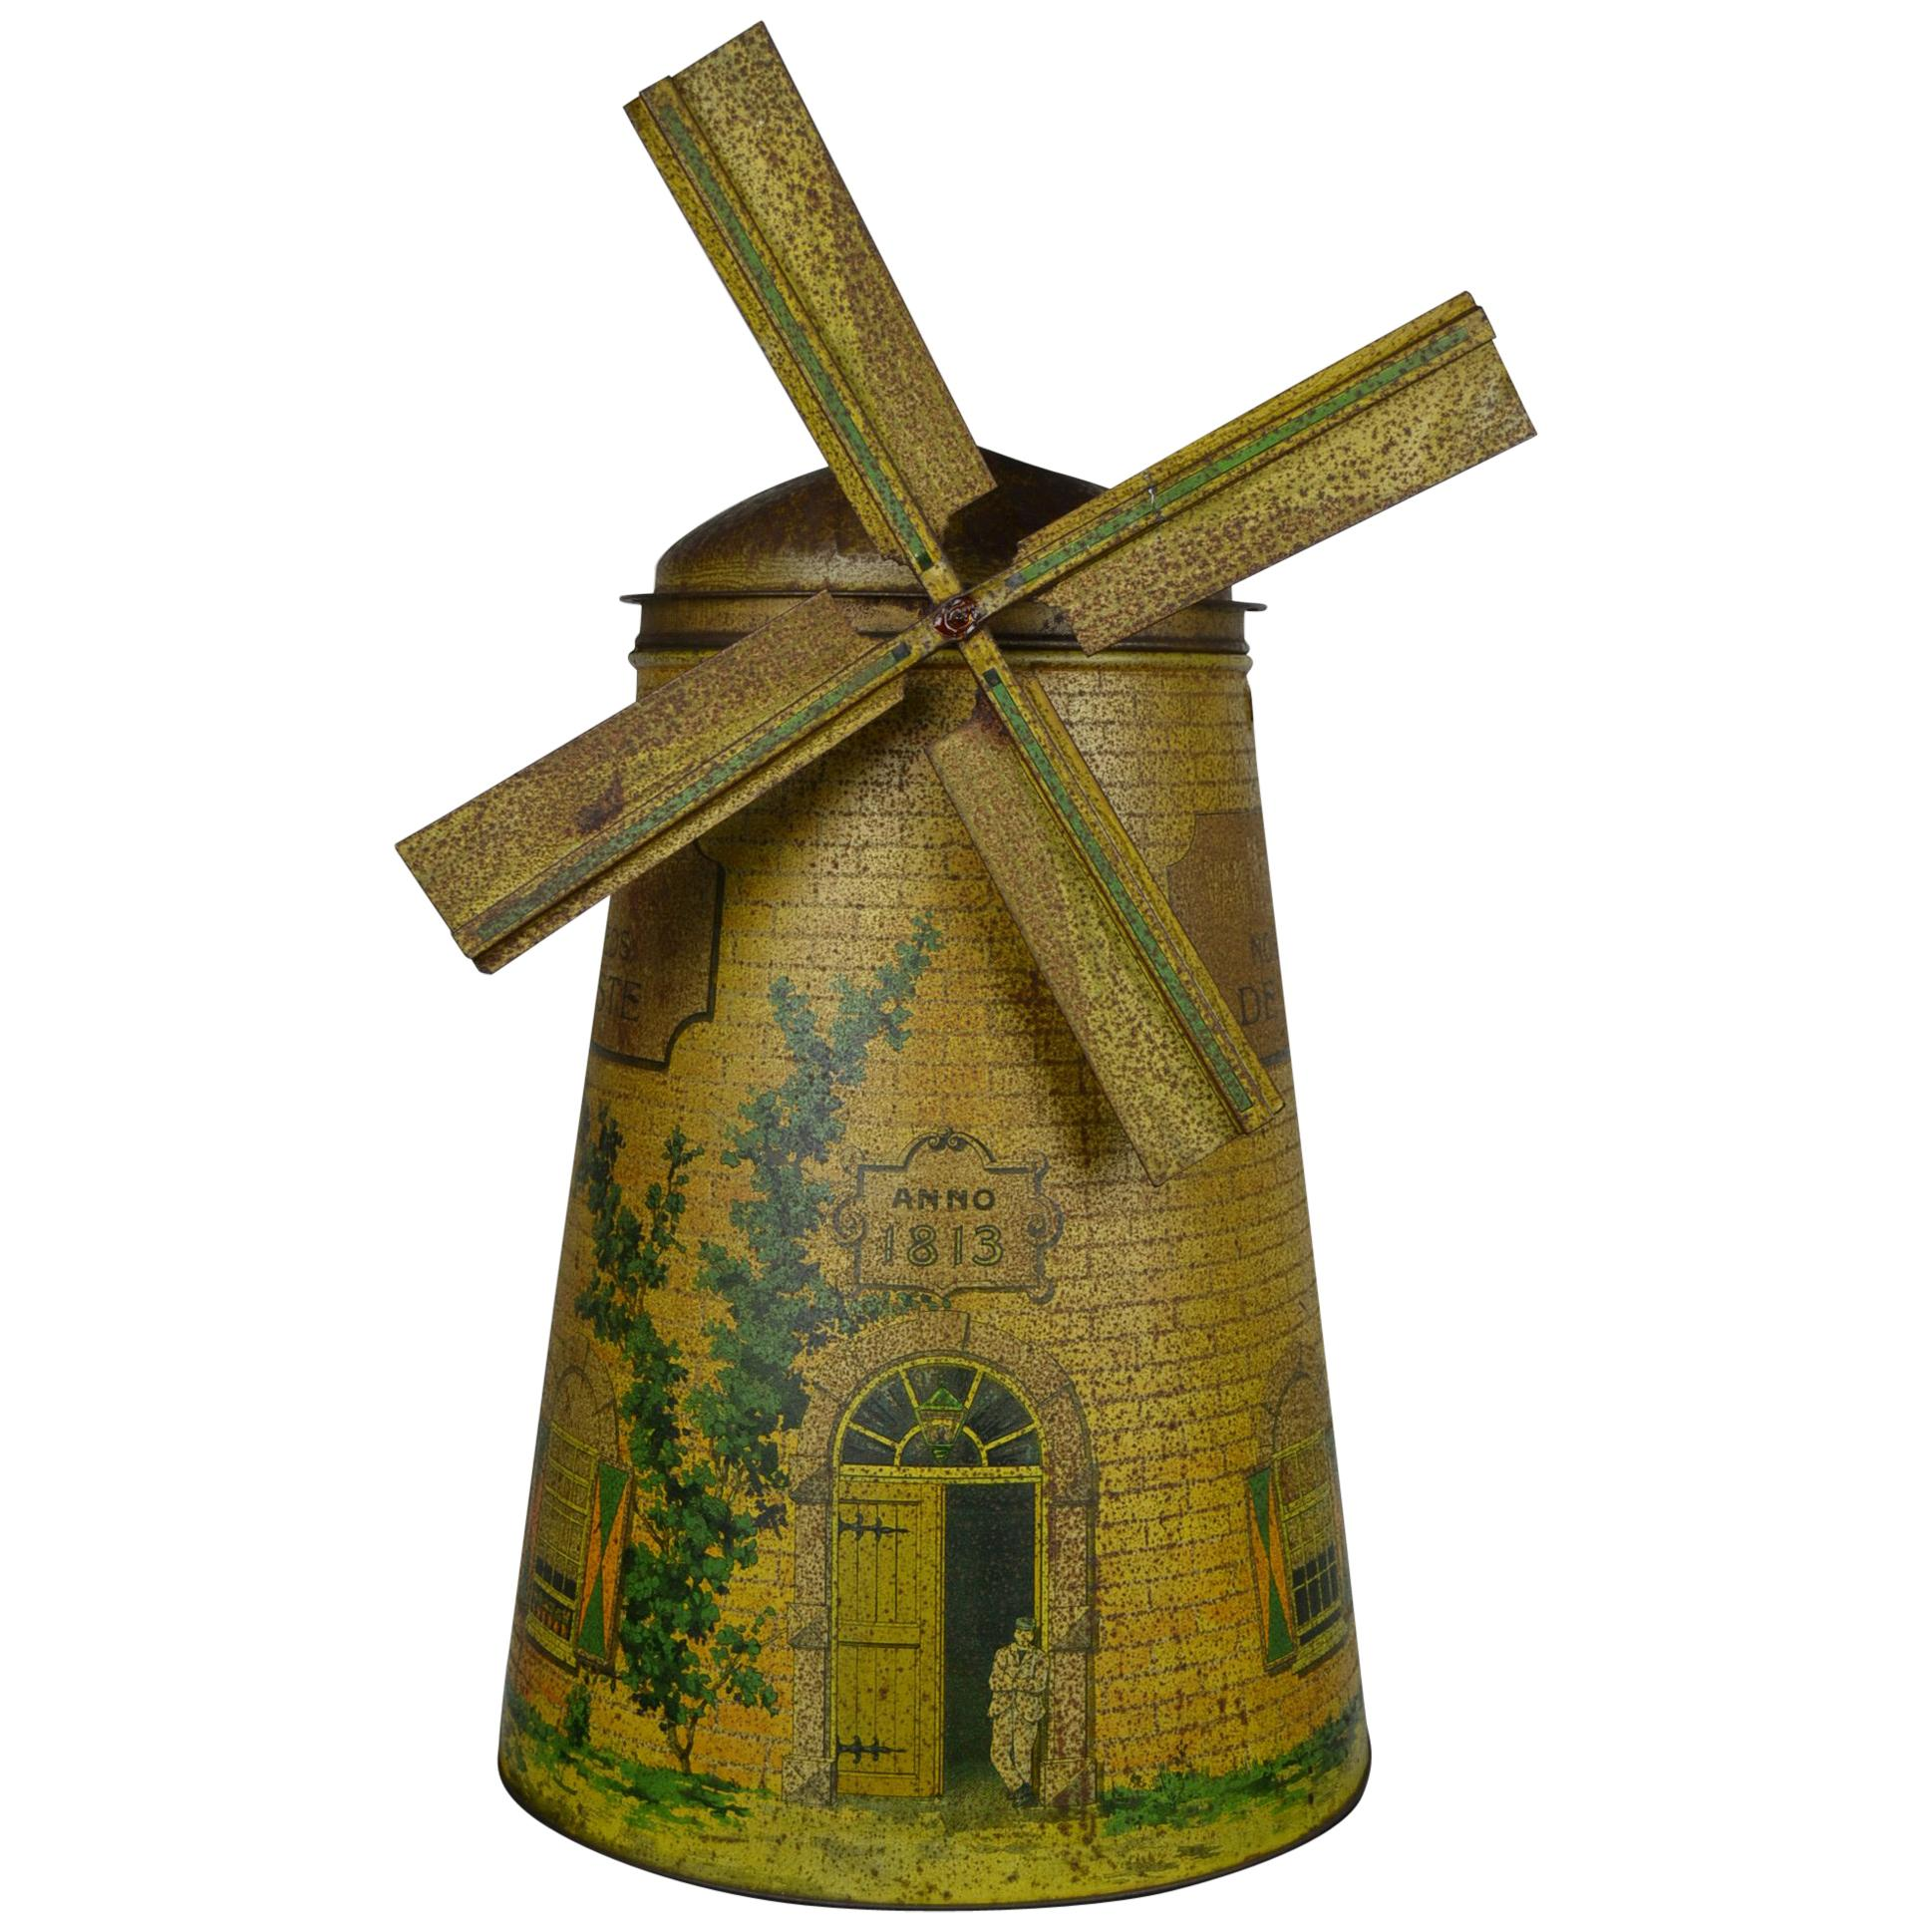 1920s Van Melle's Toffees Tin - Antique Candy Box Holland - Dutch Windmill